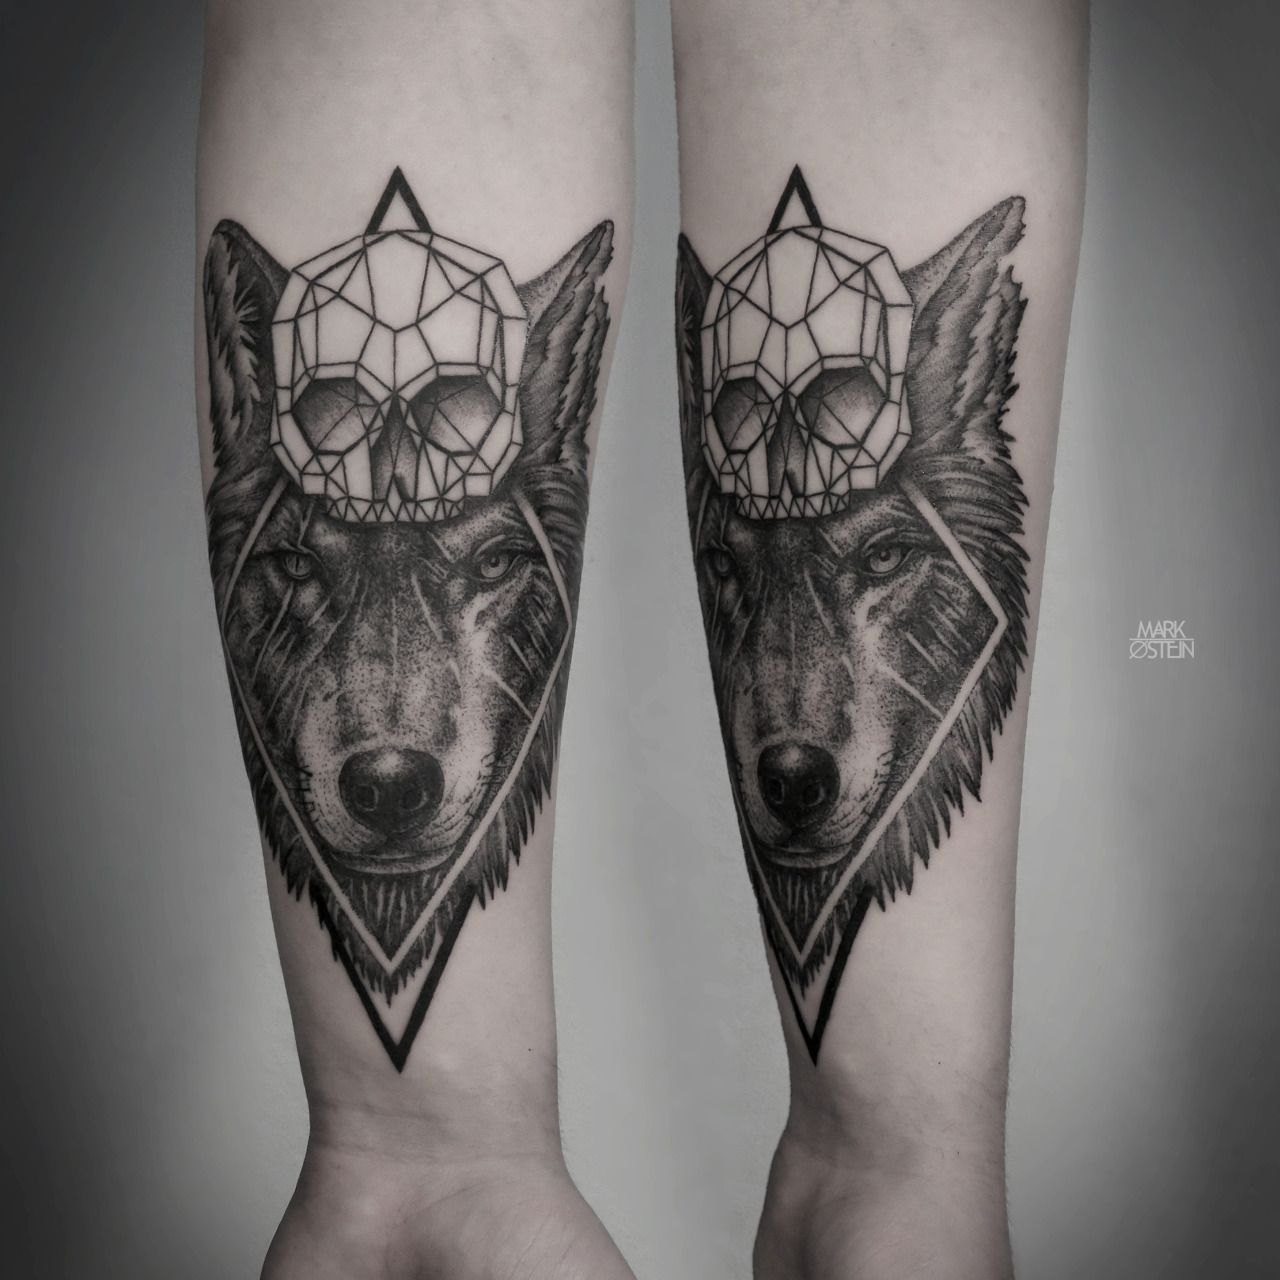 GEOMETRIC TATTOOS BY MARK OSTEIN | Tattoos | Pinterest ...